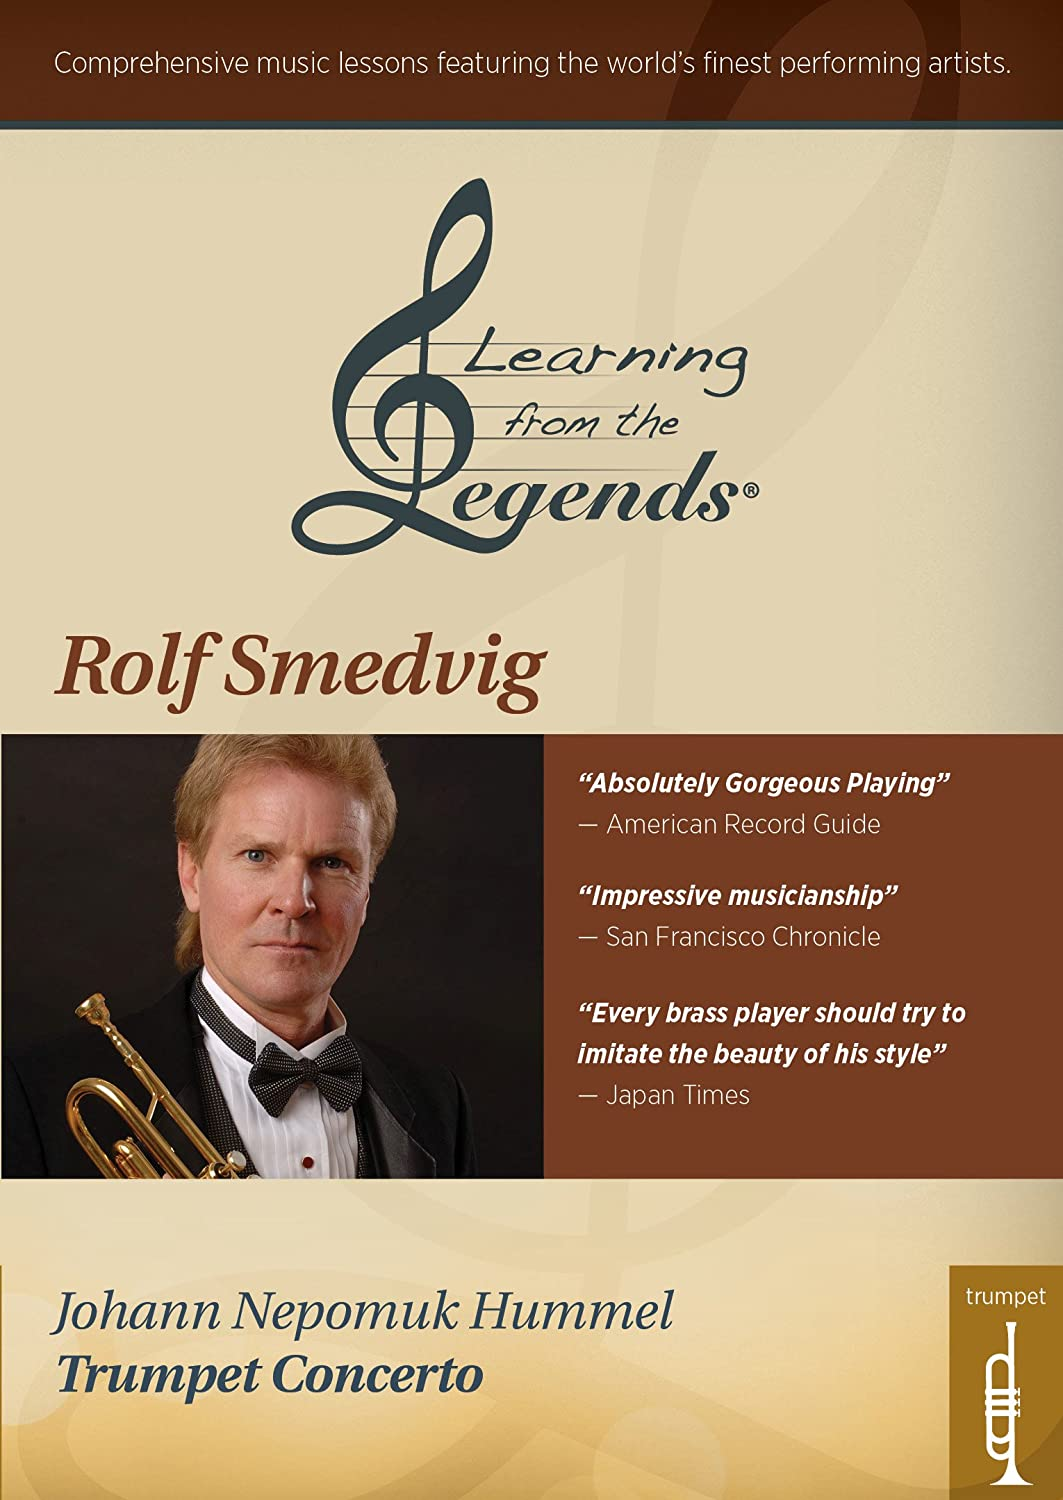 Learning From the Legends: Hummel's Trumpet Concerto featuringRolf Smedvig [DVD] [Import] B017AVXQGG